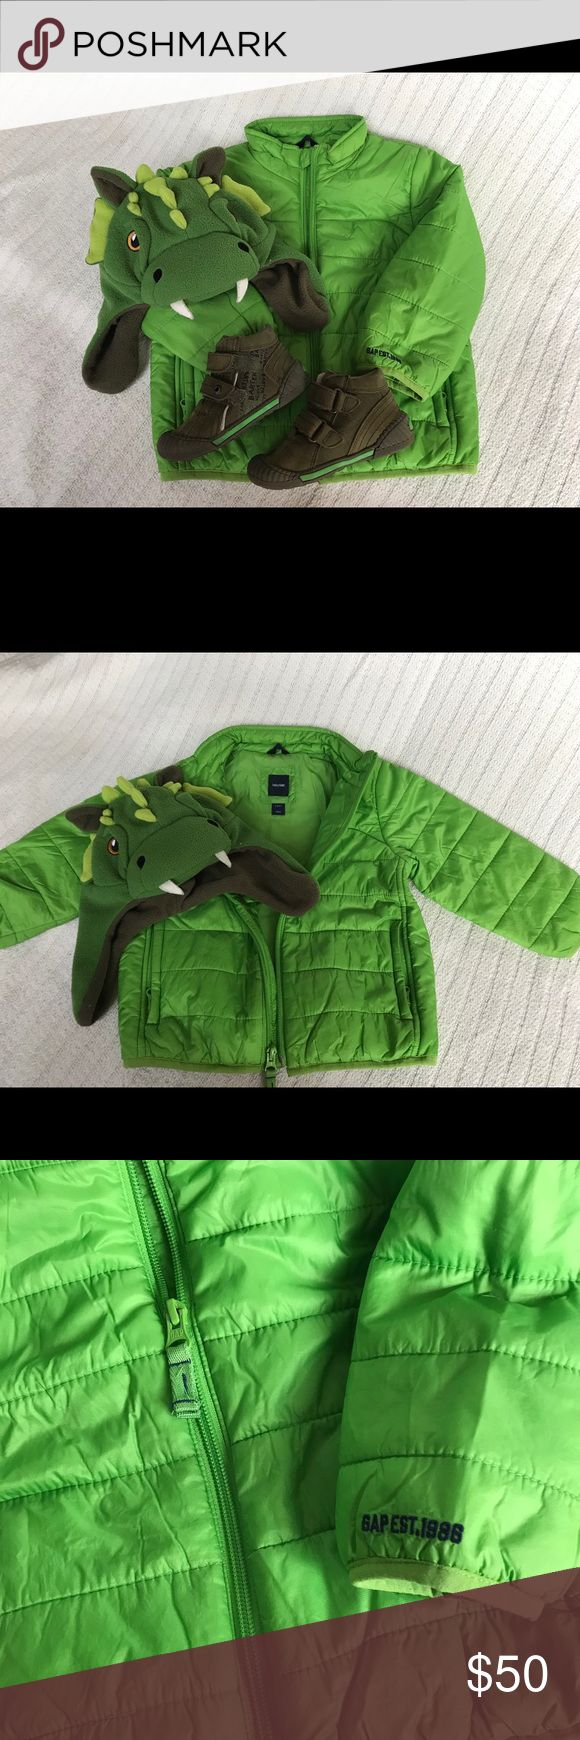 Baby Gap 🎉BUNDLE 🎉jacket coat 2T hat shoes boots Beautiful bundle for your little boy.  Jacket is prima loft by Gap, size 2.  Dinosaur hat is also by Gap size XS/S.  I am also including beautiful European all leather boots.  Therese are very high quality shoes, size European 23, us 6/12-7.  All pieces are in excellent condition, shoes are like new.  Check out my other listings for snow bibs and more. GAP Jackets & Coats Puffers